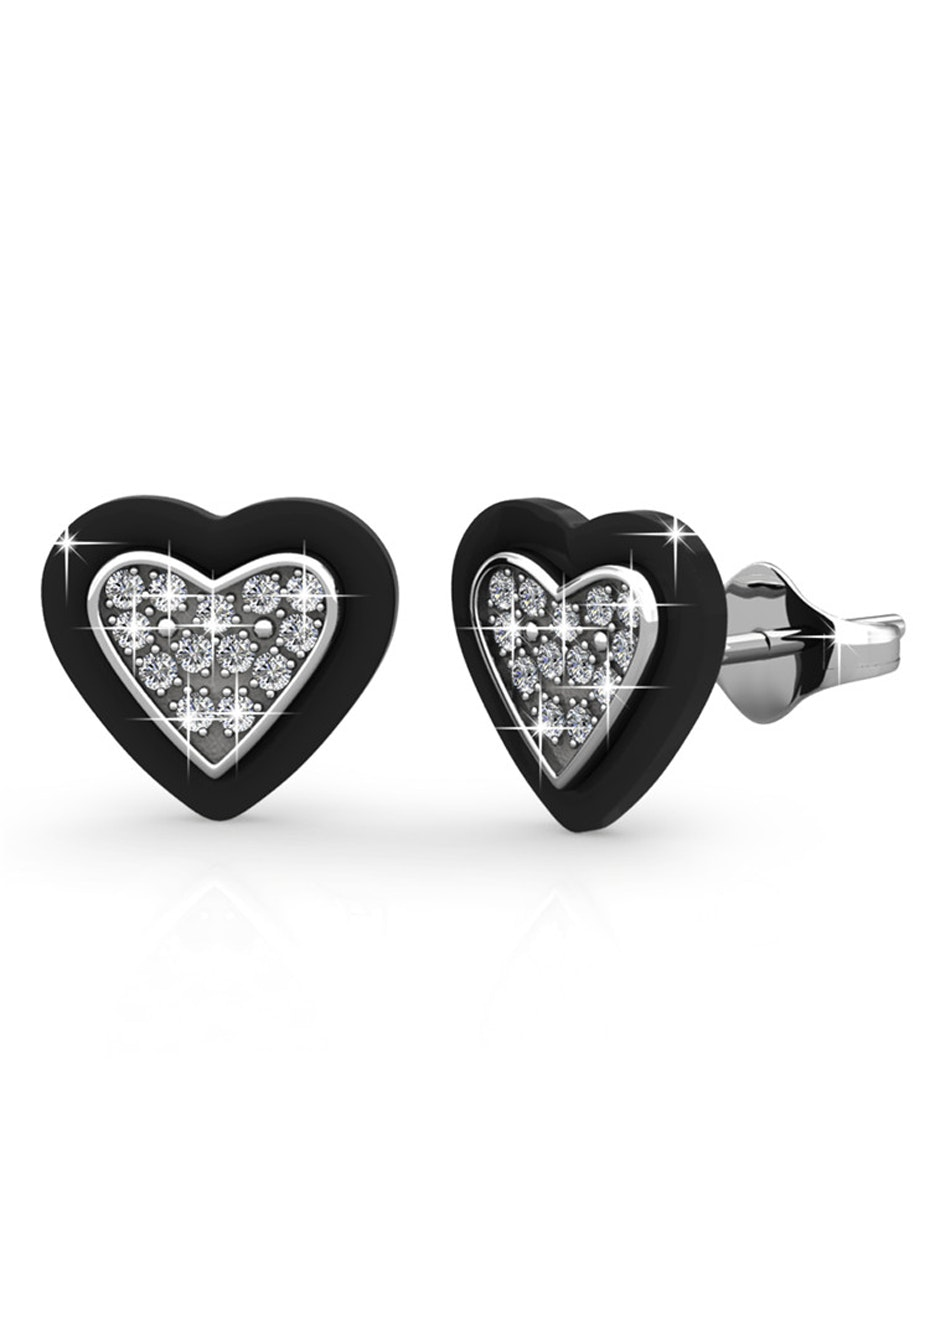 Black and White Gold Earrings Embellished with Crystals from Swarovski